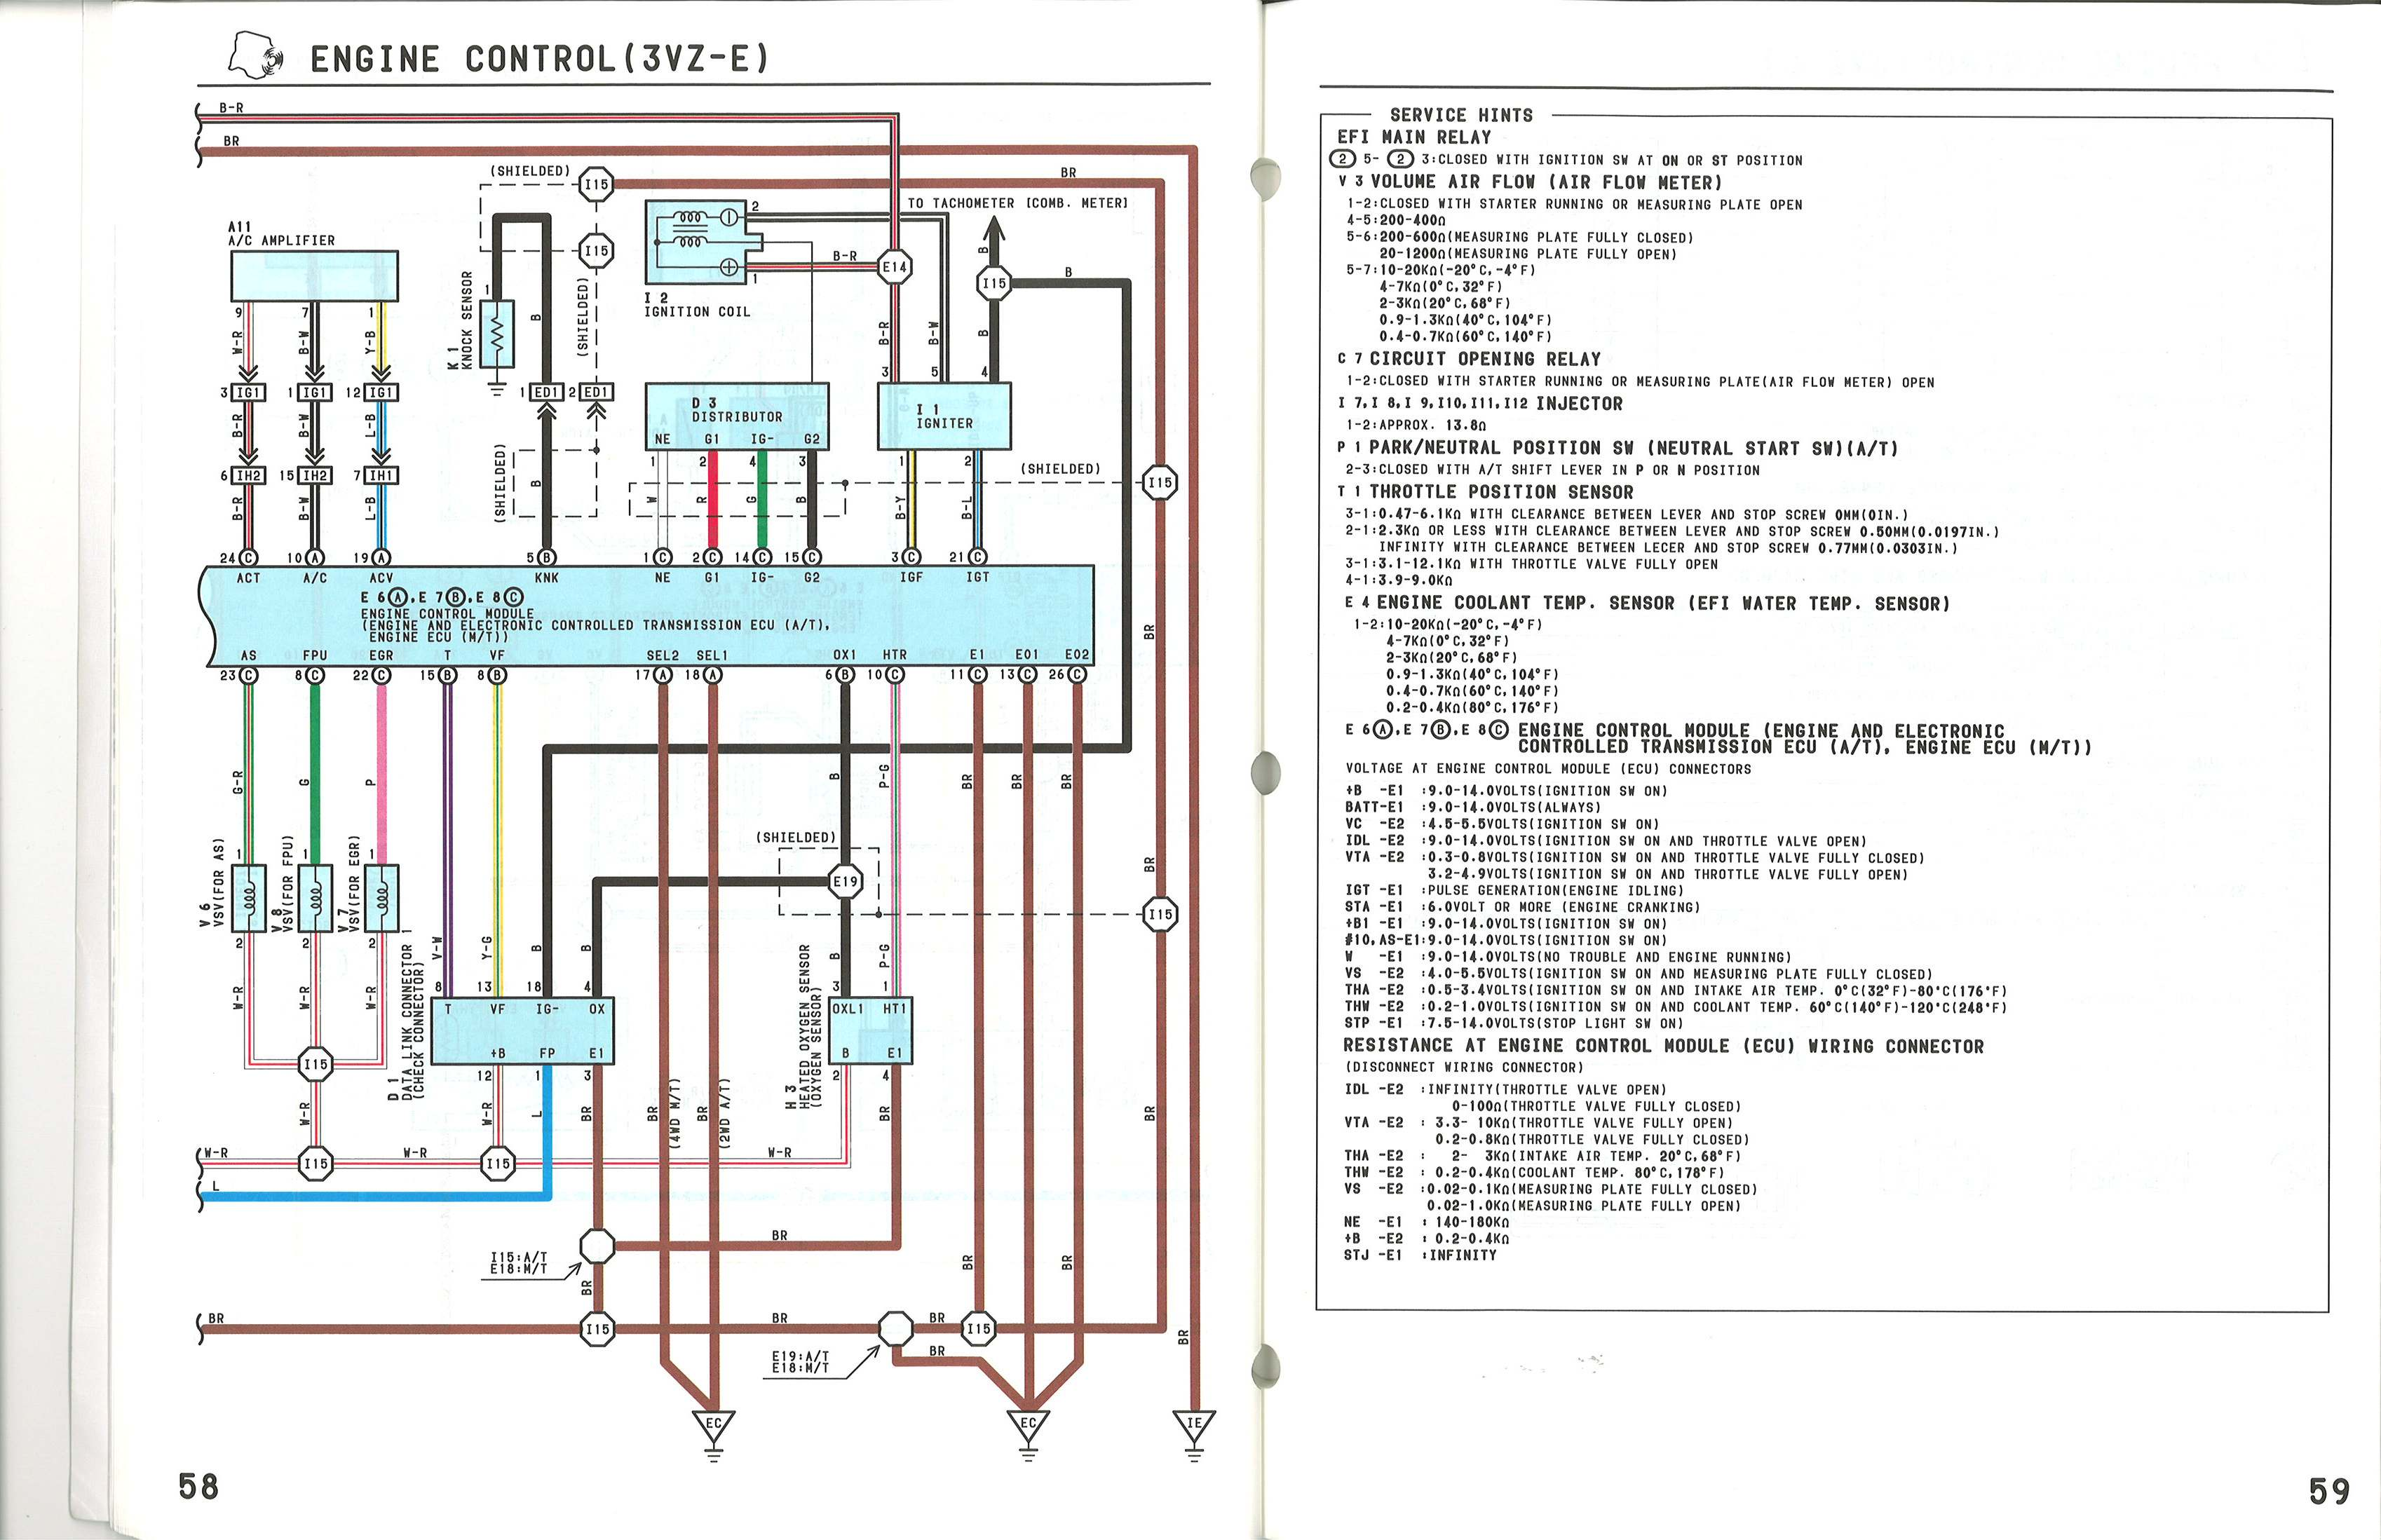 90 4runner Wiring Diagram Detailed Schematics Diagram 89 4Runner Alternator  Diagram 89 4runner Wiring Diagram. Source. 89 toyota pickup ...